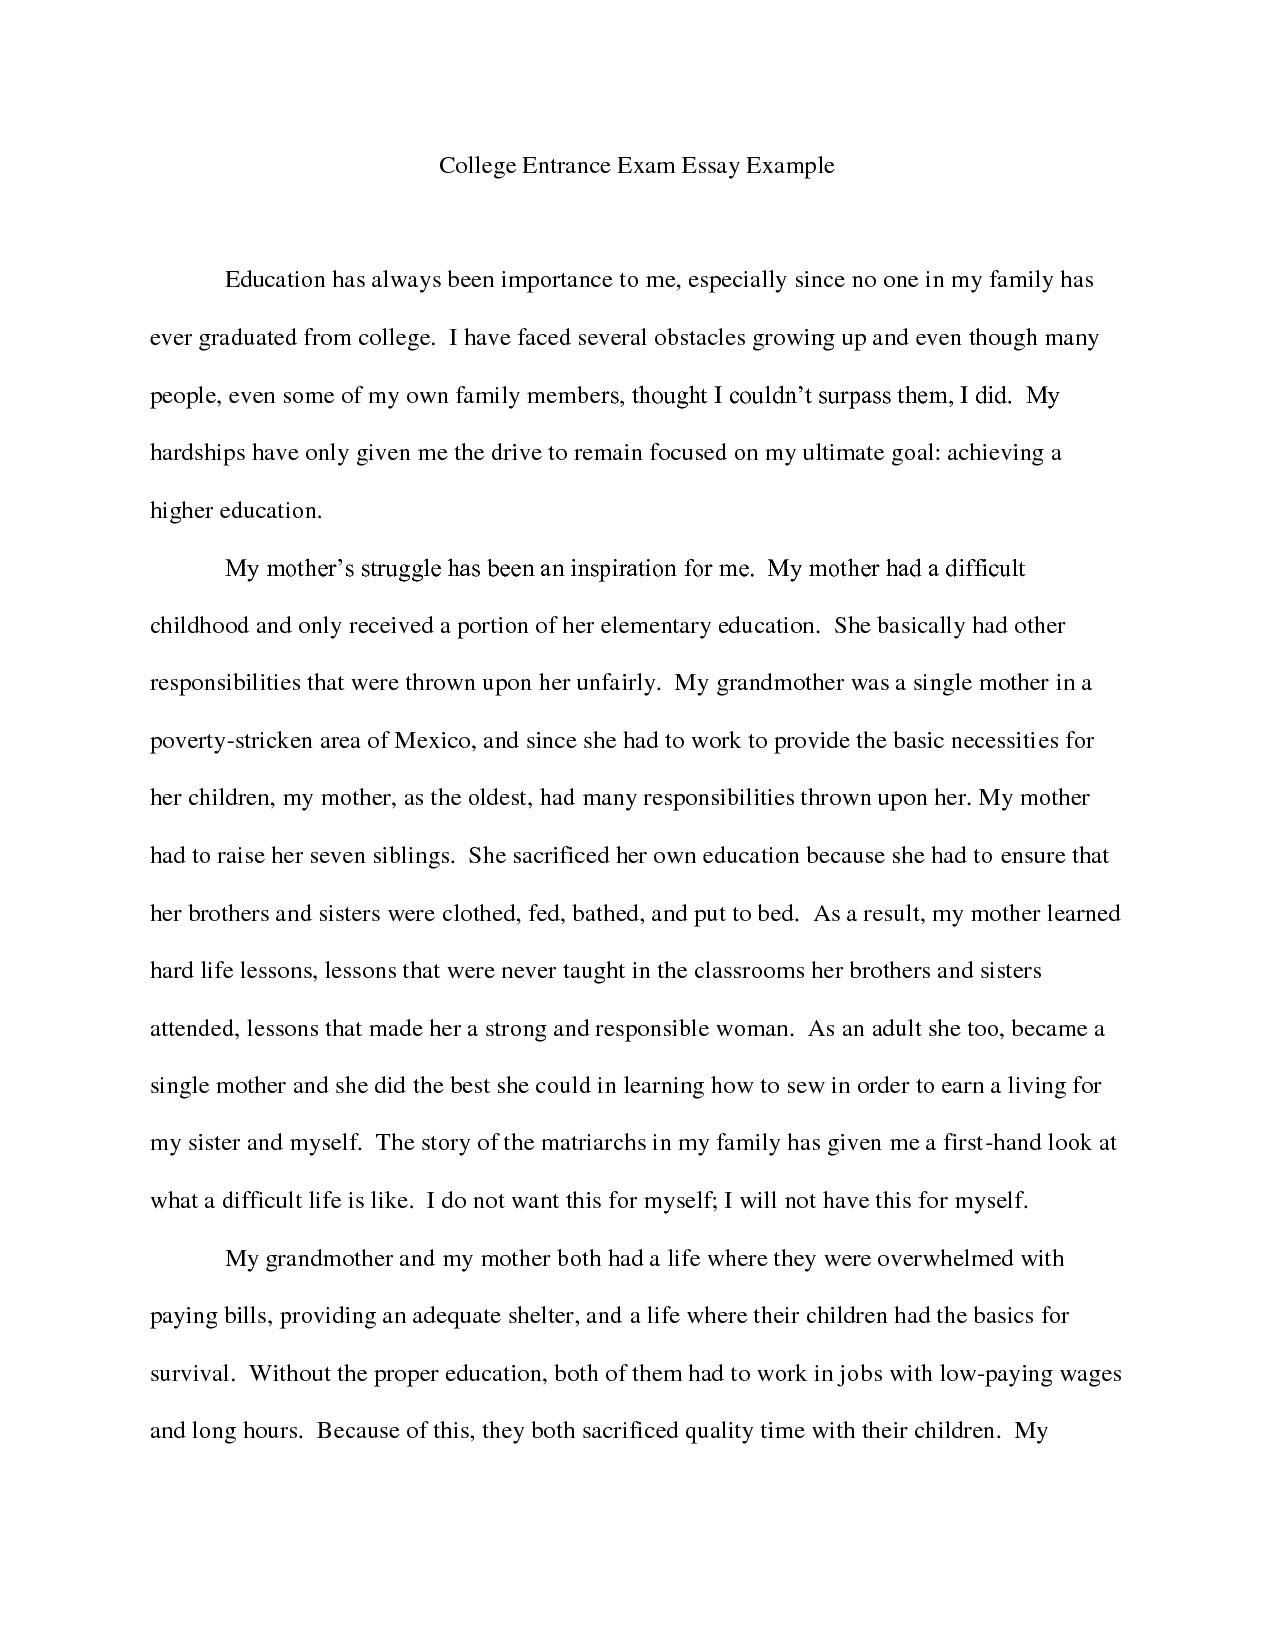 006 College Prompt Essays Samples 130950 Unique Essay Examples 1 Application Prompts Full